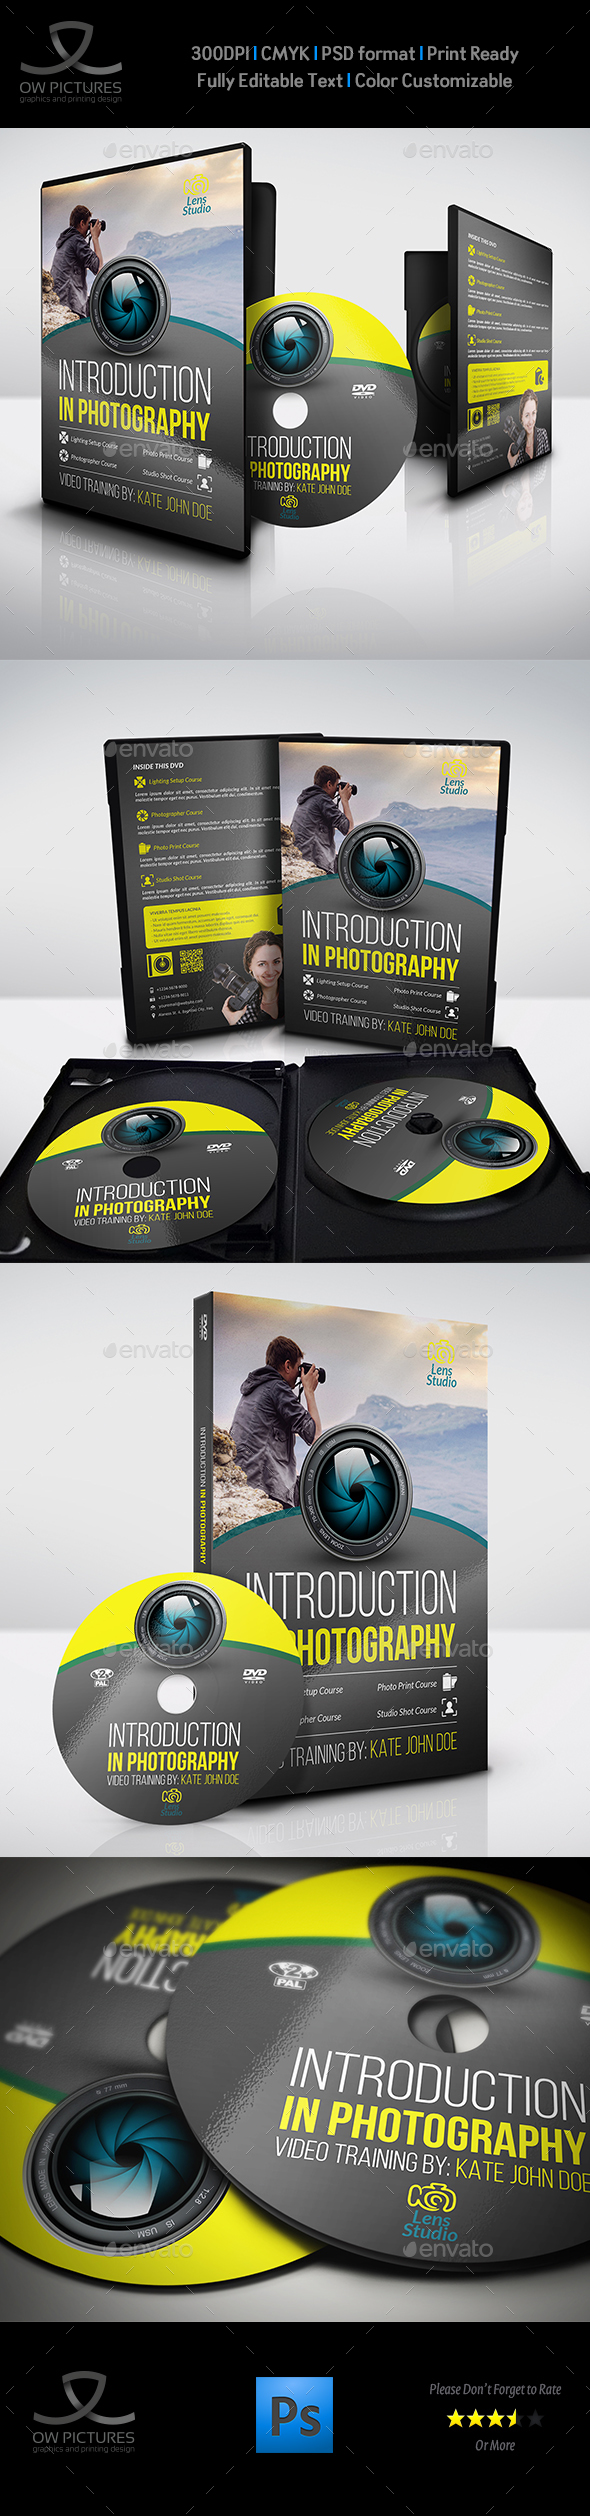 Photography Training Course DVD Template - CD & DVD Artwork Print Templates